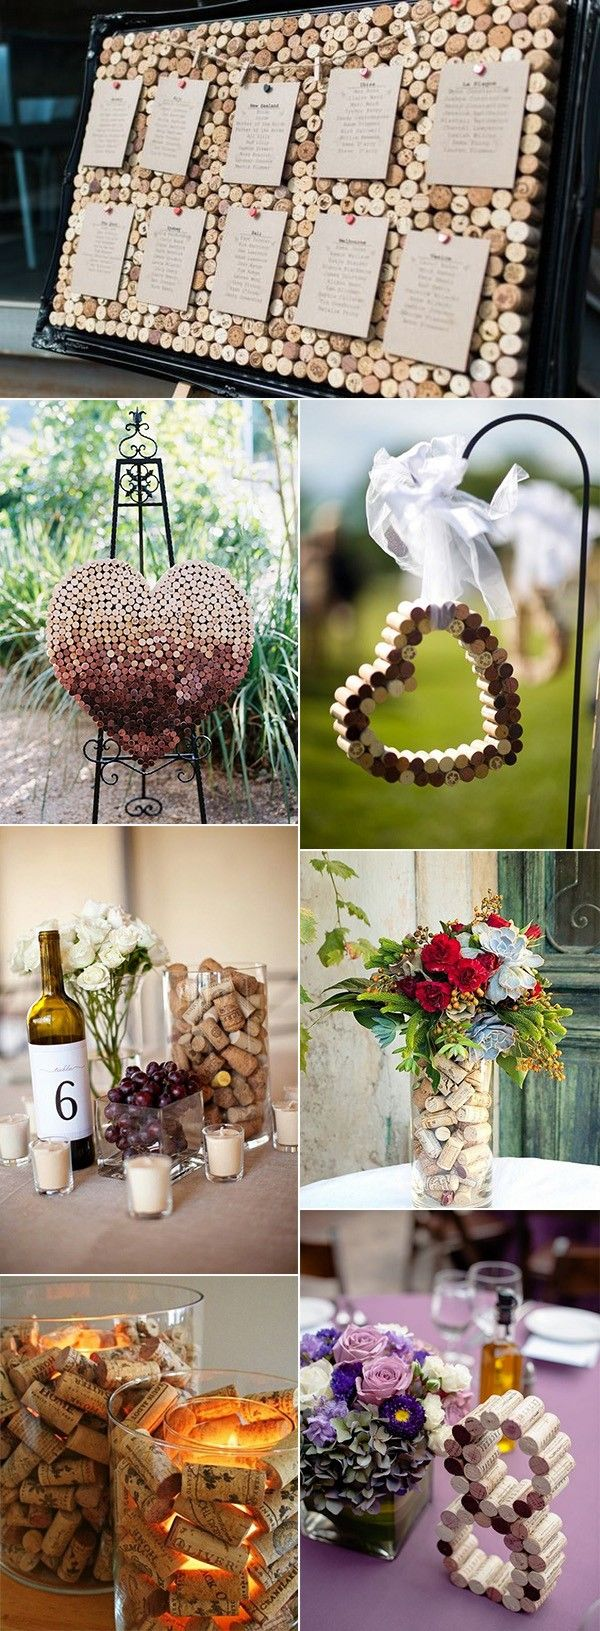 Wedding decorations ideas at home   Chic Vineyard Themed Wedding Ideas for   Page  of   For